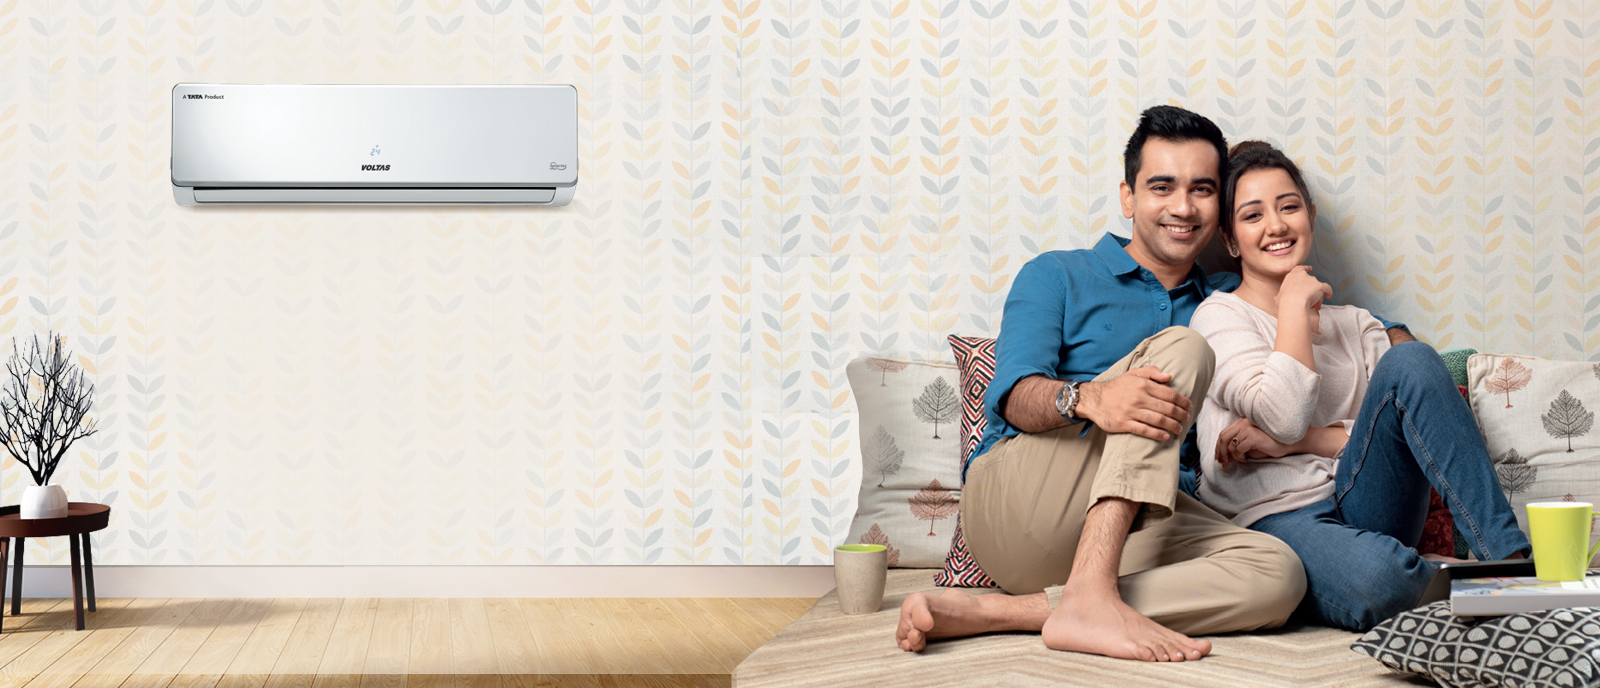 Best Adjustable Air Conditioner (AC) by Voltas | A Tata Product